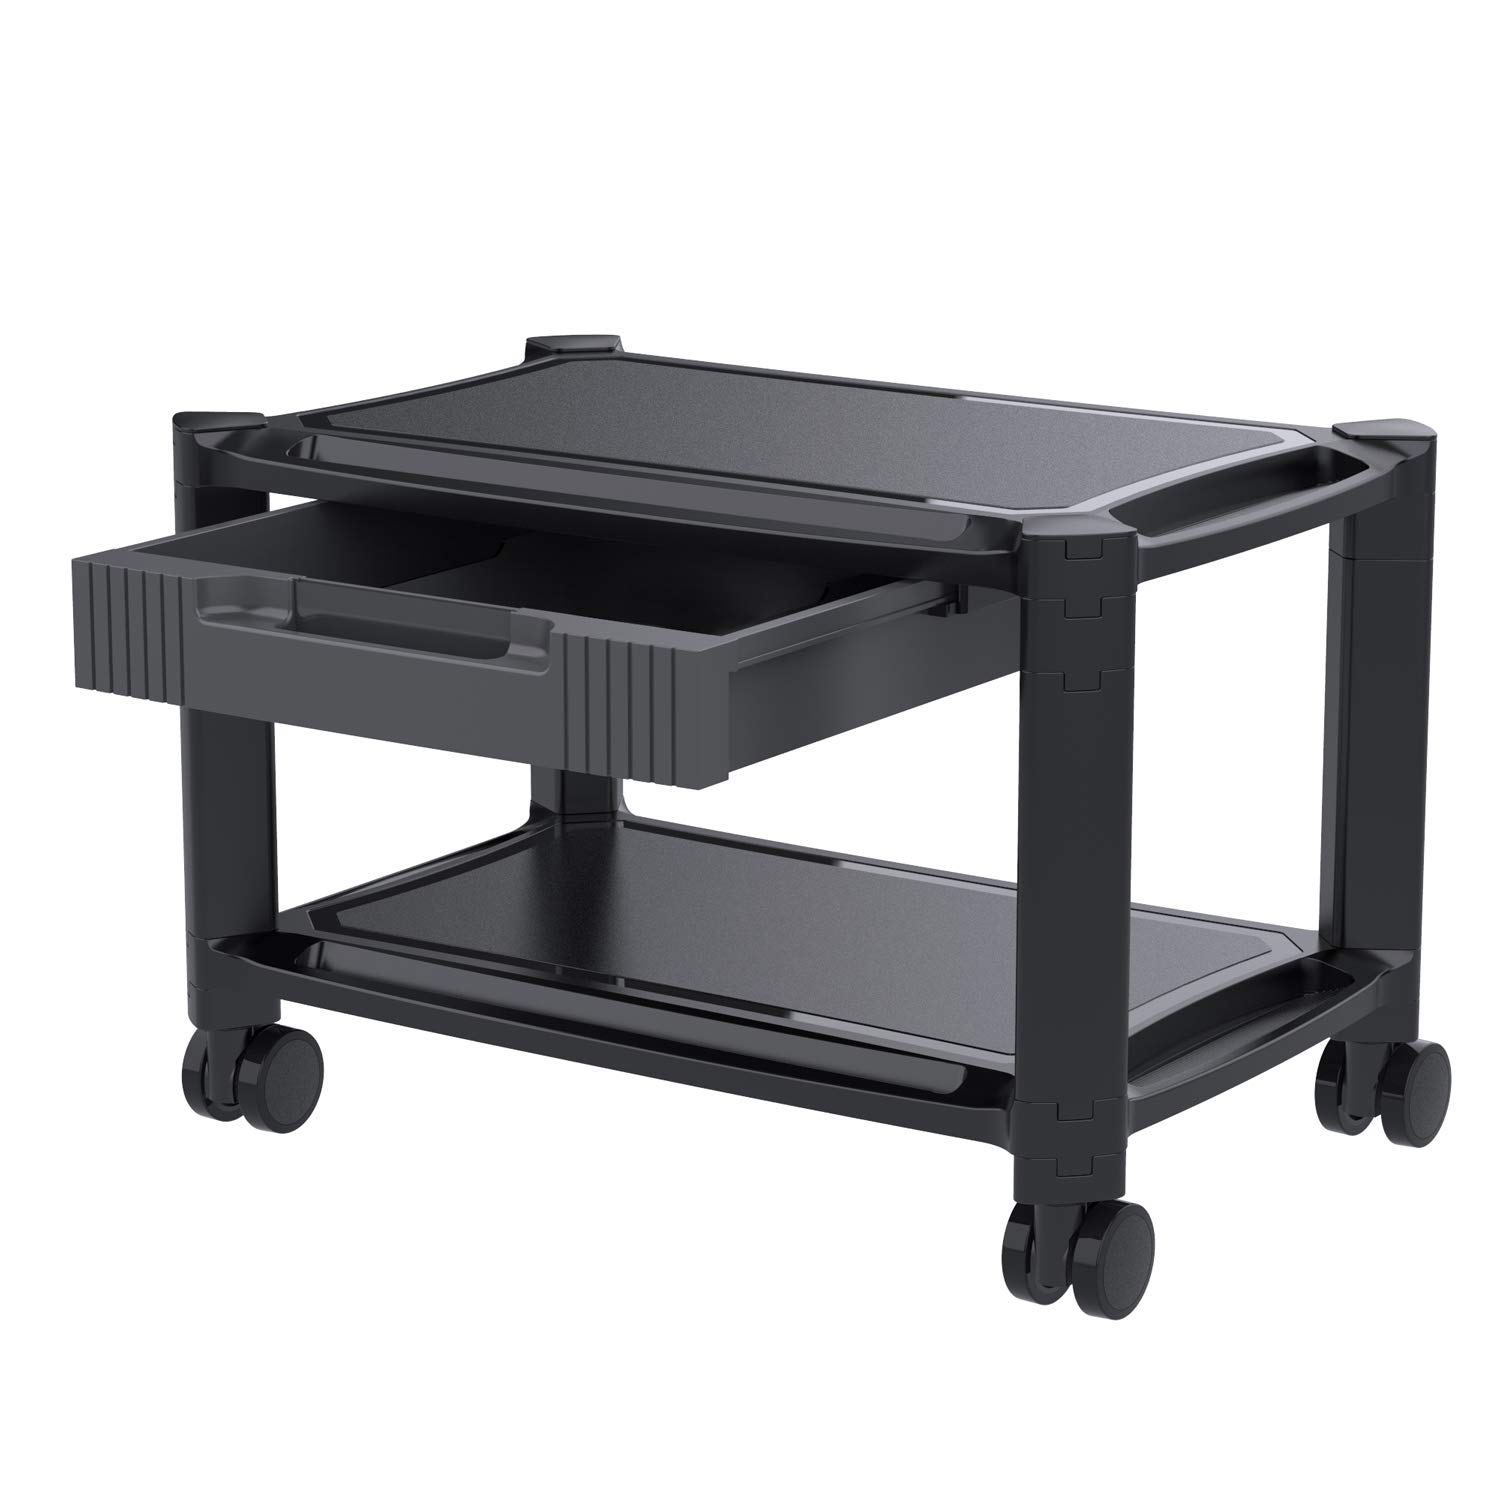 Printer Stand - Under Desk Printer Cart with 4 Rolling Wheels & Storage Drawer, Durable Printer Riser Shelf for Fax, Scanner, Office Supplies by HUANUO